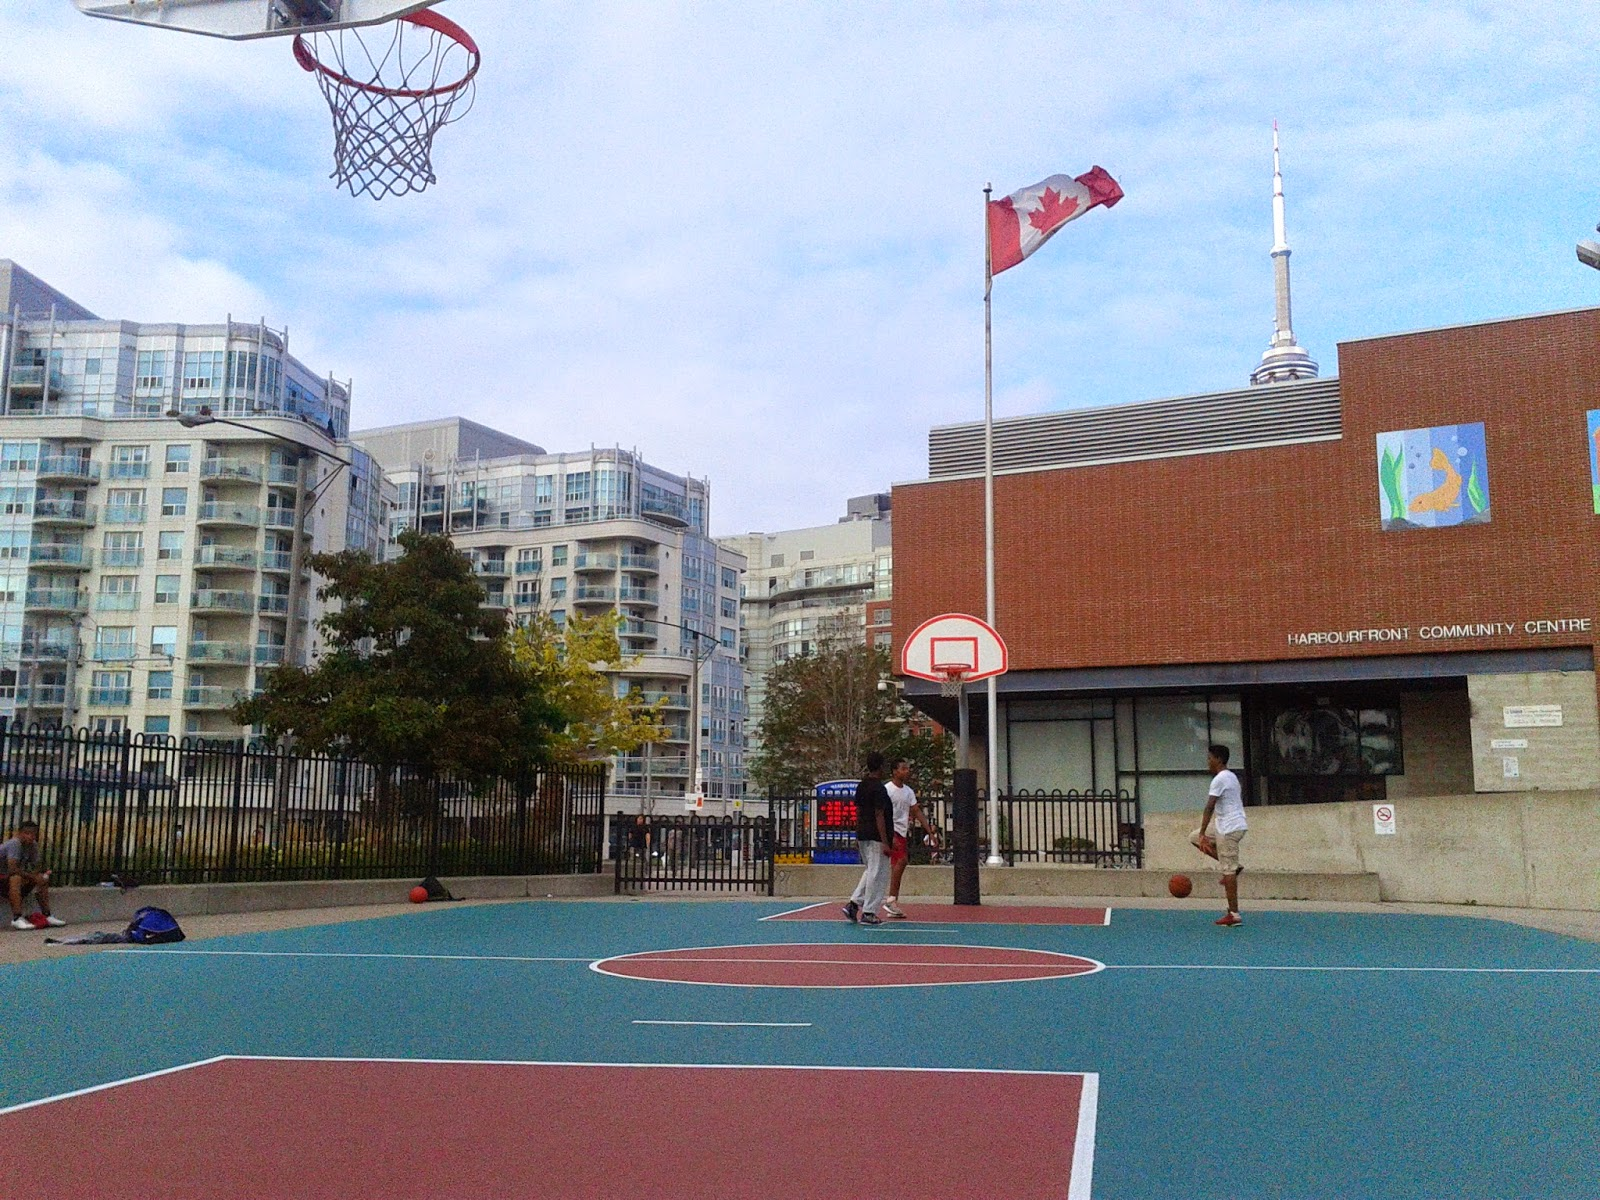 Toronto Things Harbourfront Centre Outdoor Basketball Court